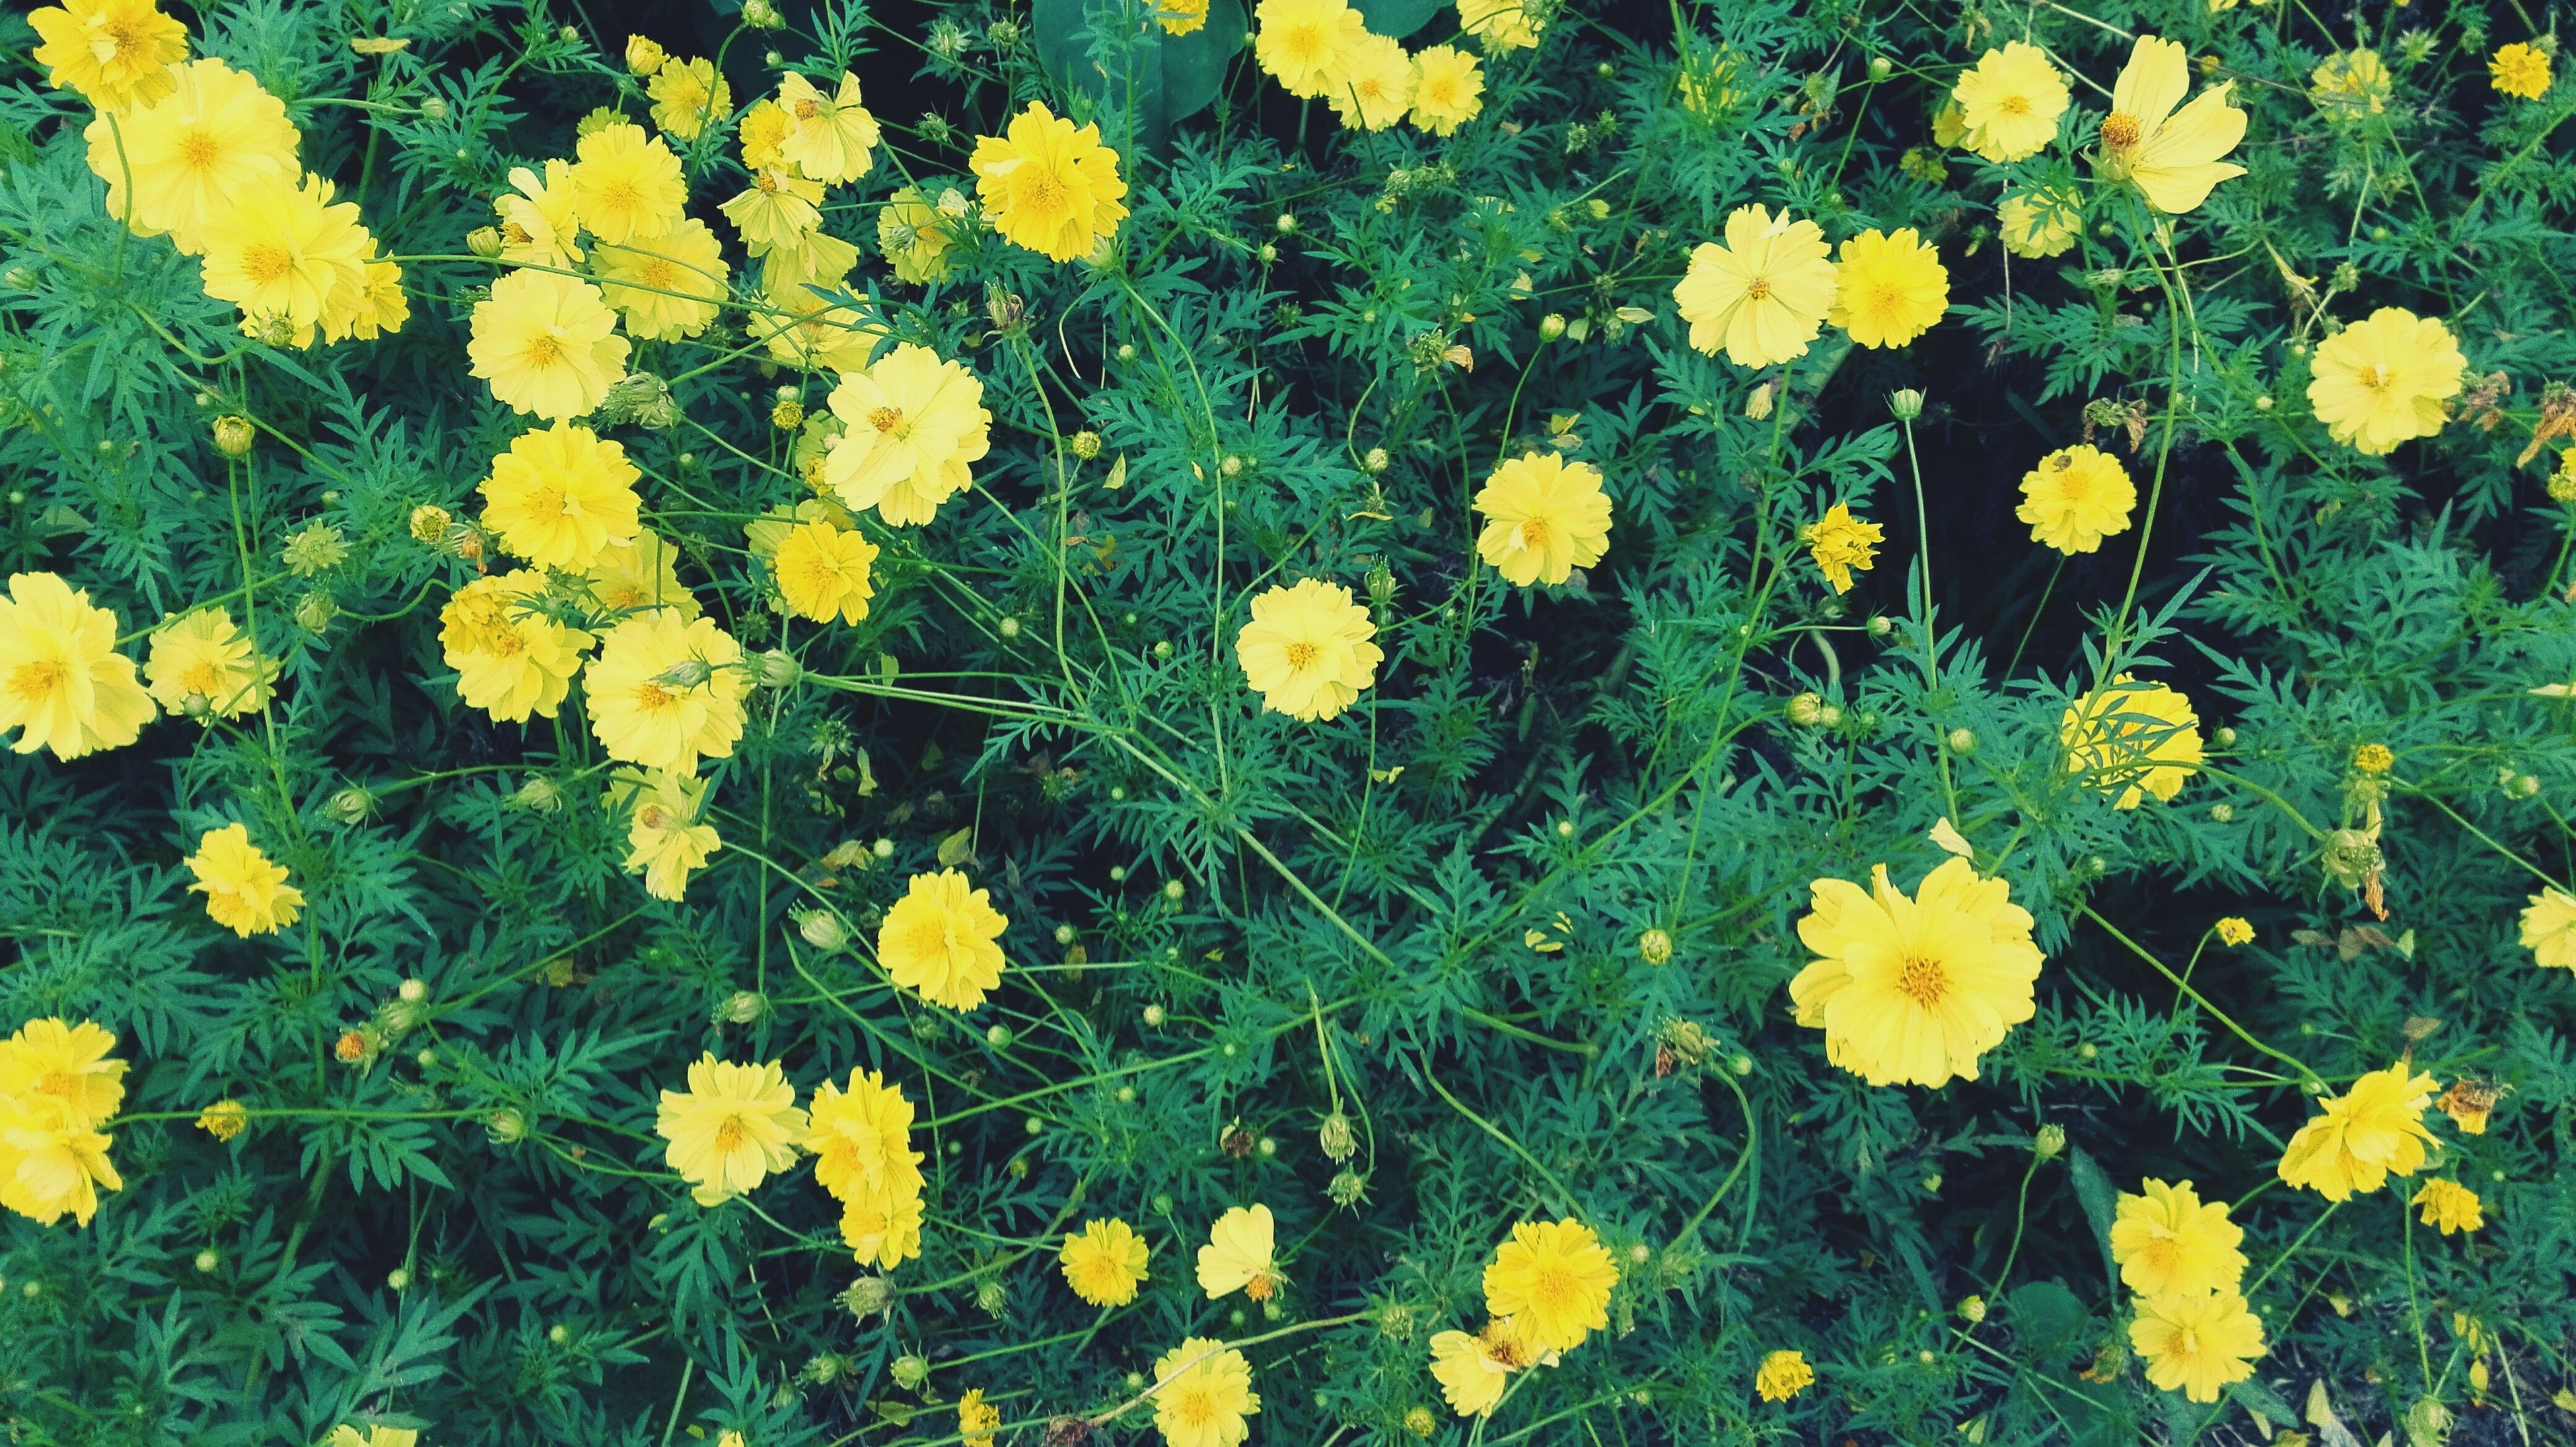 flower, yellow, freshness, growth, fragility, petal, beauty in nature, plant, high angle view, nature, green color, field, blooming, grass, flower head, leaf, in bloom, outdoors, day, no people